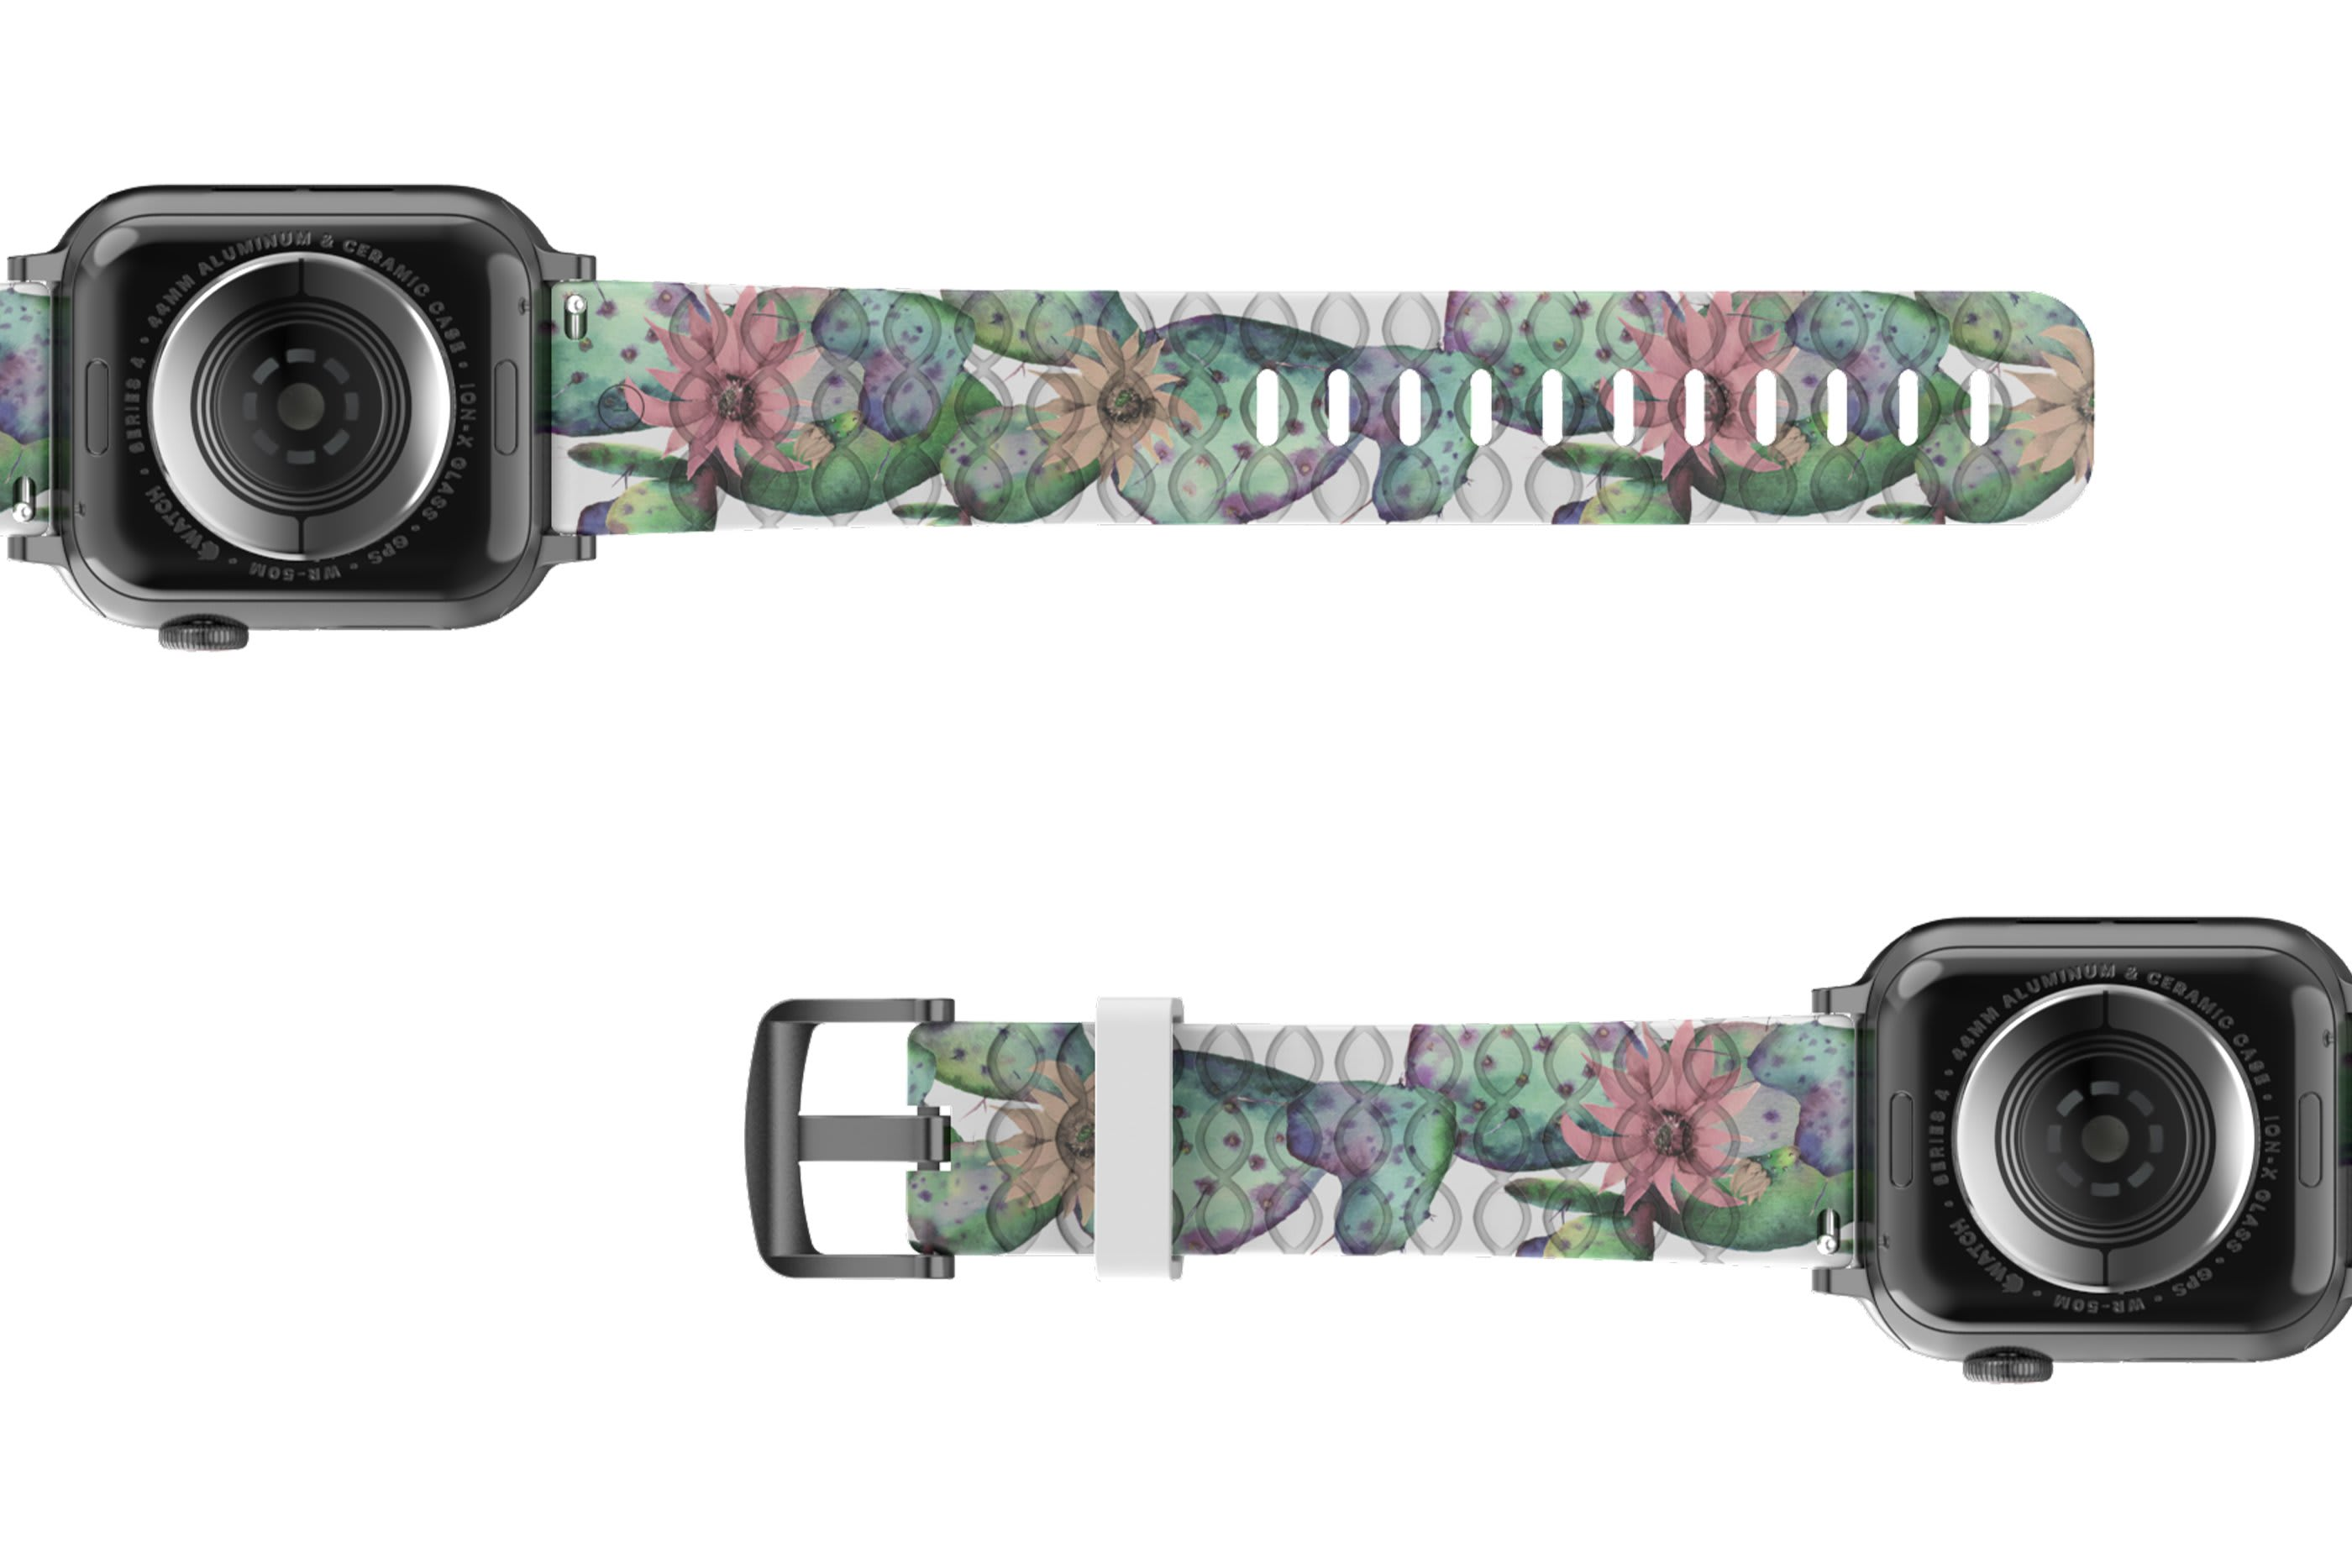 Cactus Bloom Apple Watch Band with silver hardware viewed bottom up